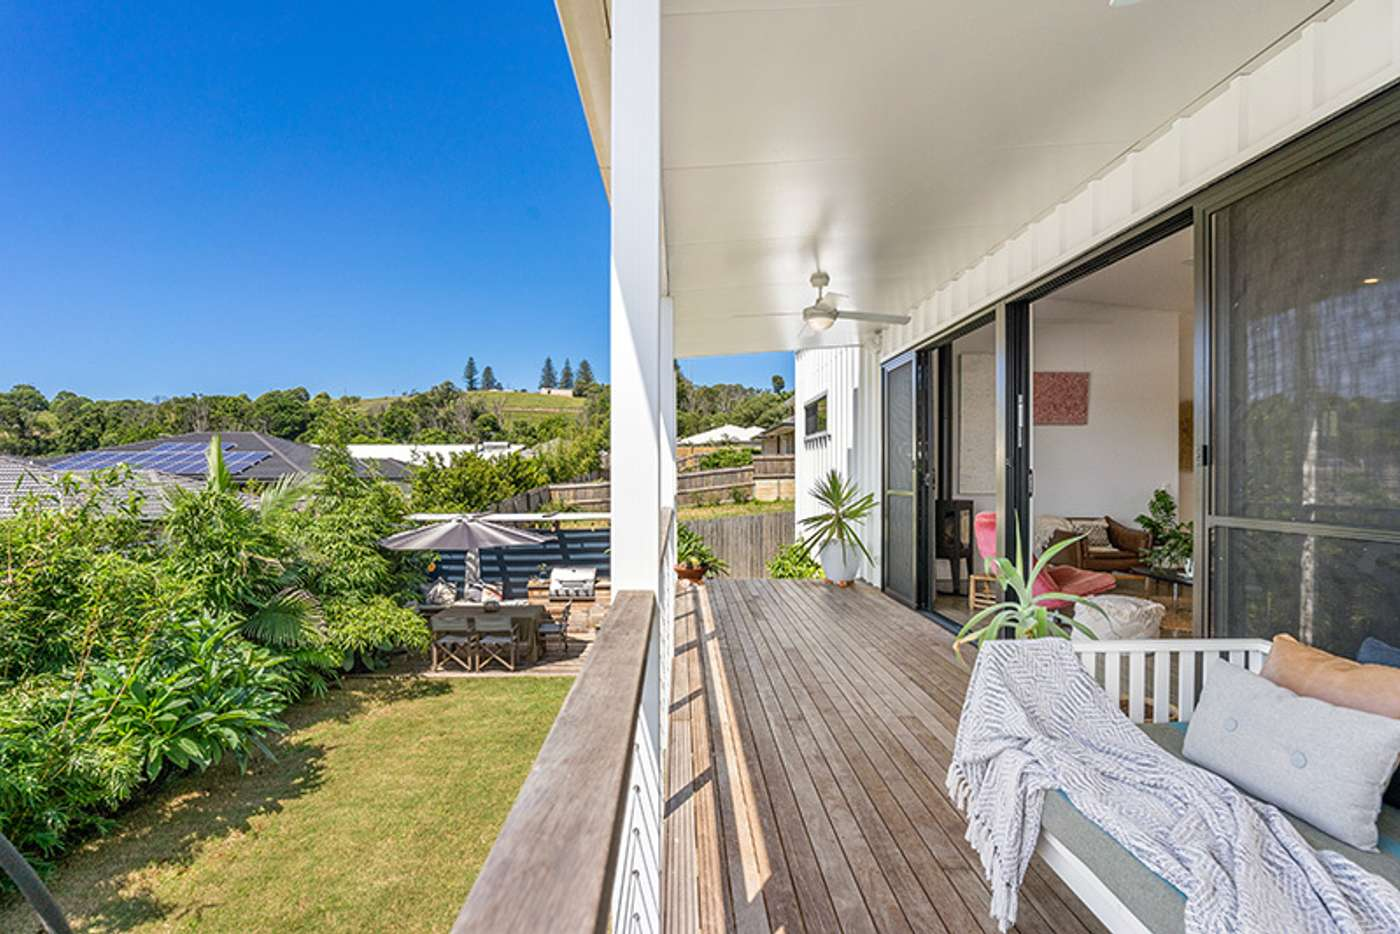 Fifth view of Homely house listing, 31 Fox Valley Way, Lennox Head NSW 2478